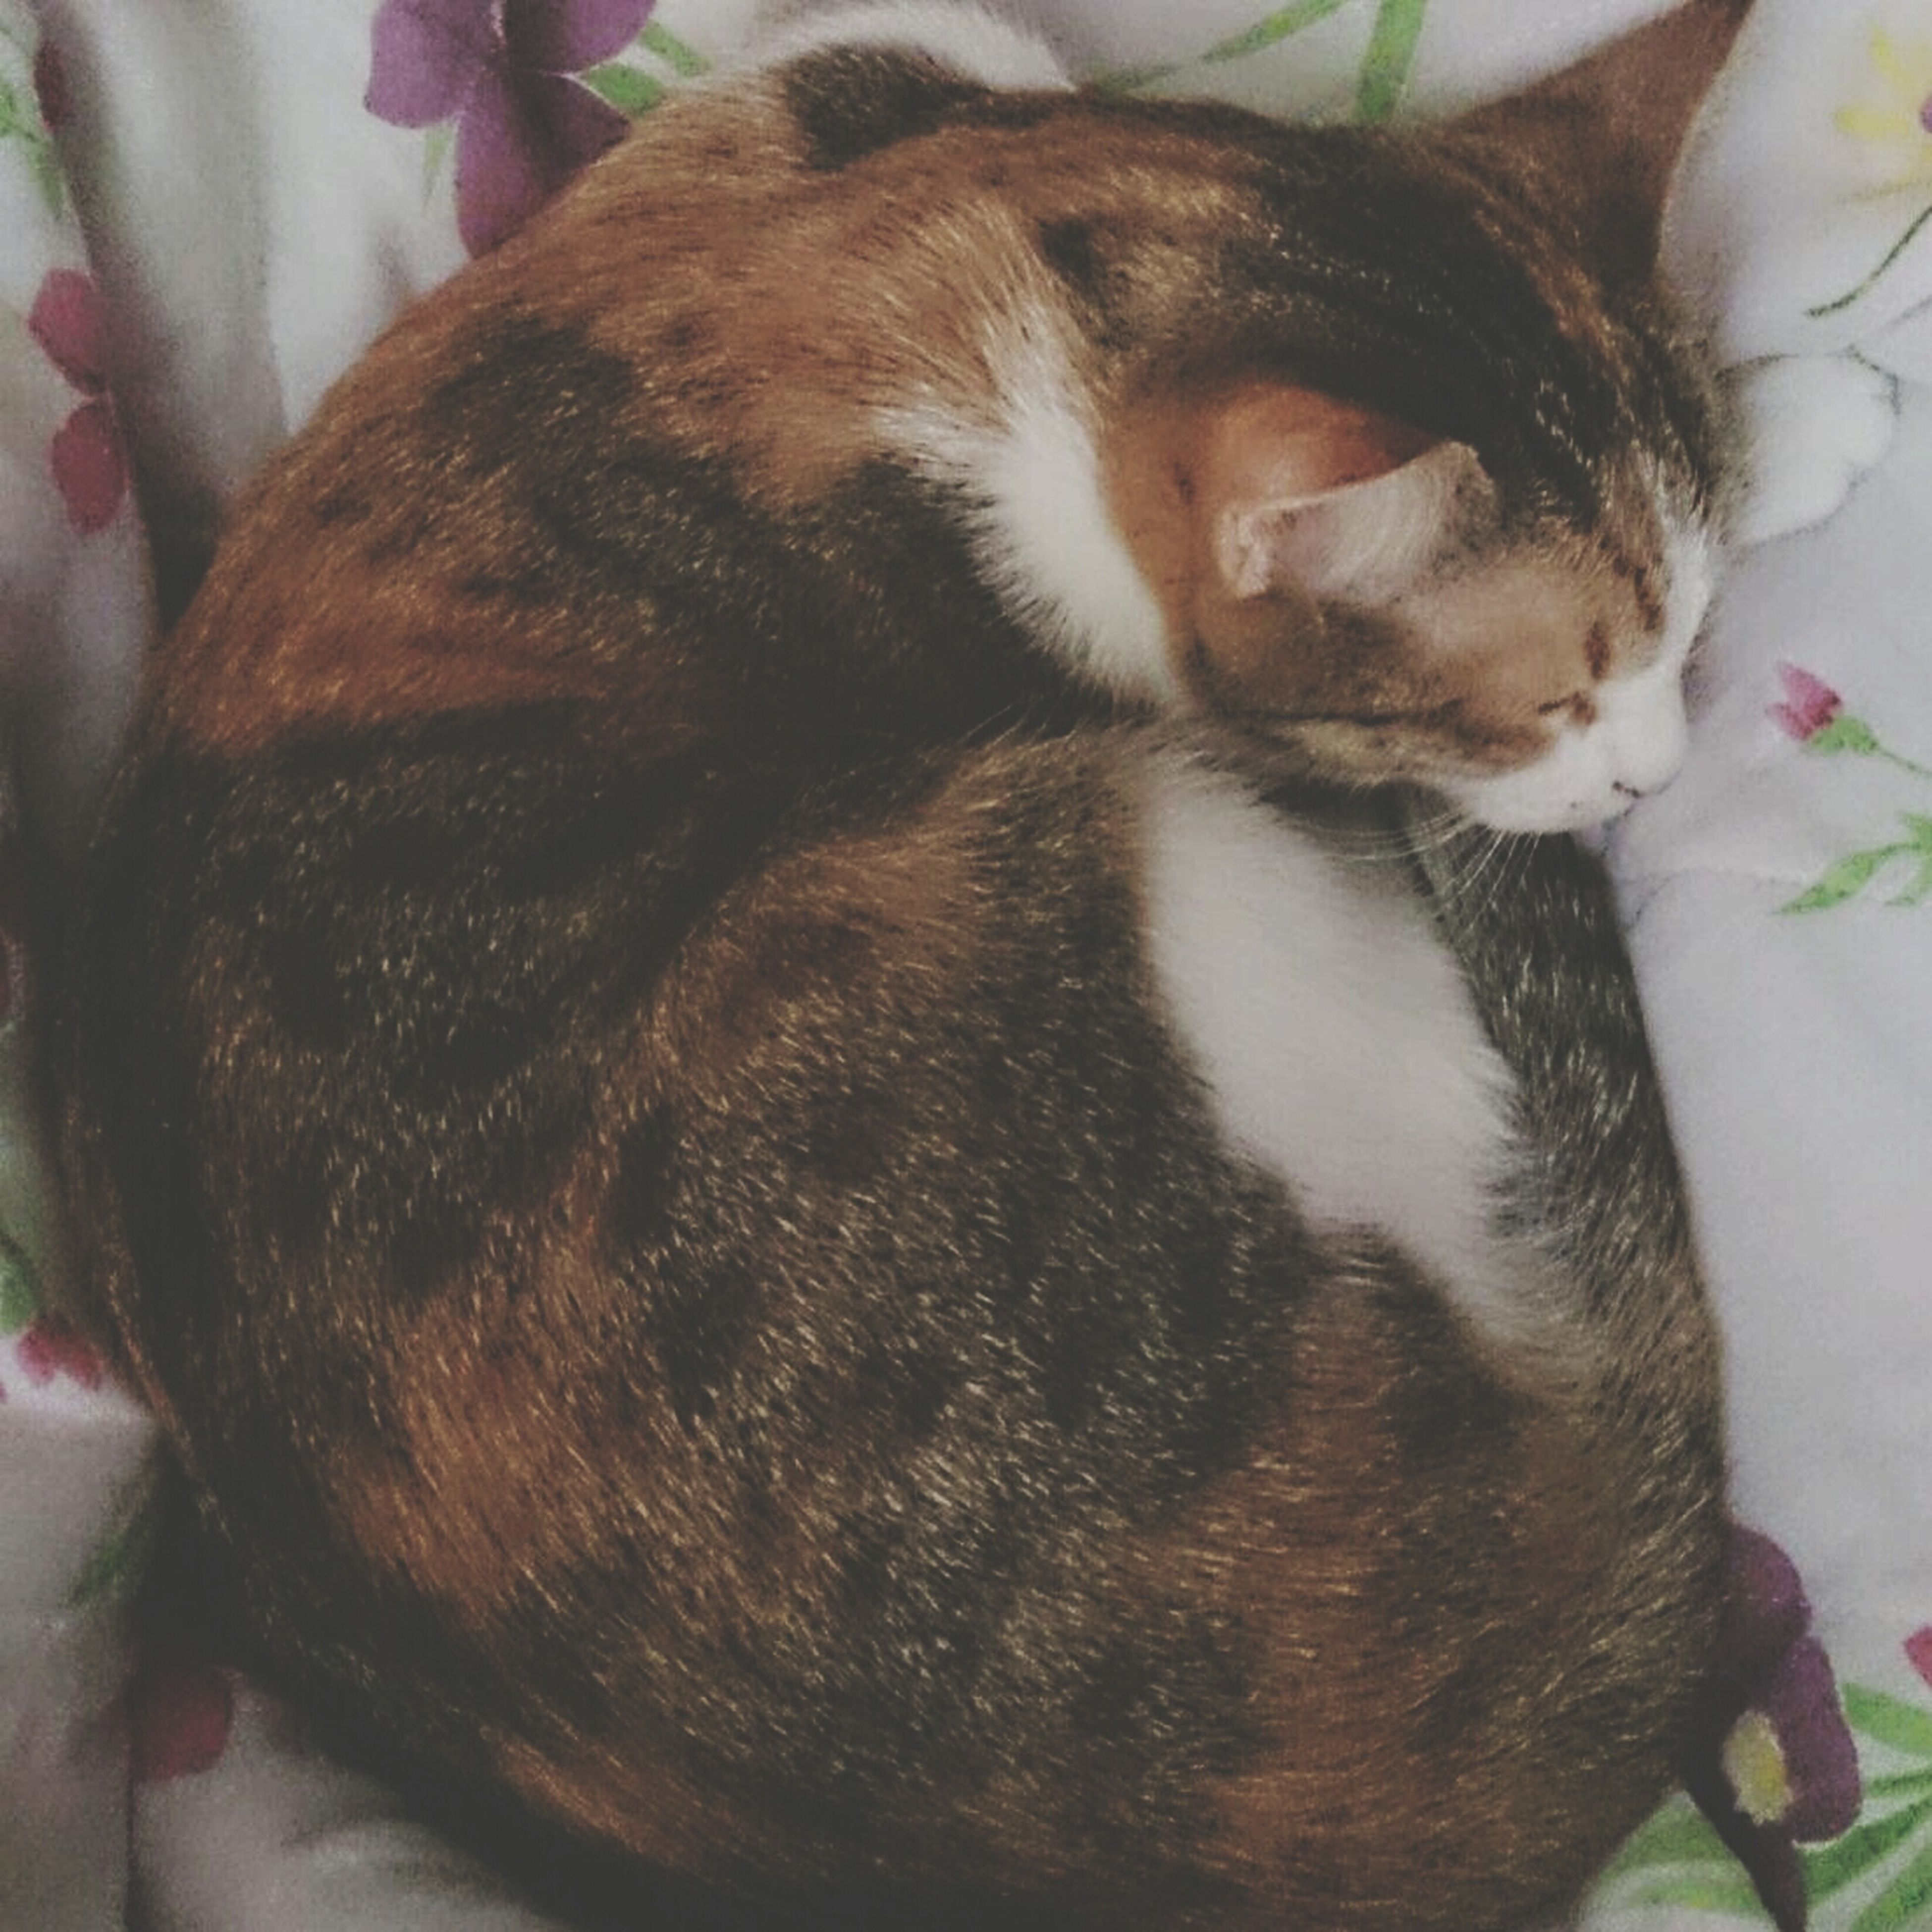 domestic animals, pets, animal themes, one animal, mammal, indoors, dog, sleeping, relaxation, resting, domestic cat, lying down, bed, cat, high angle view, eyes closed, home interior, close-up, cute, feline